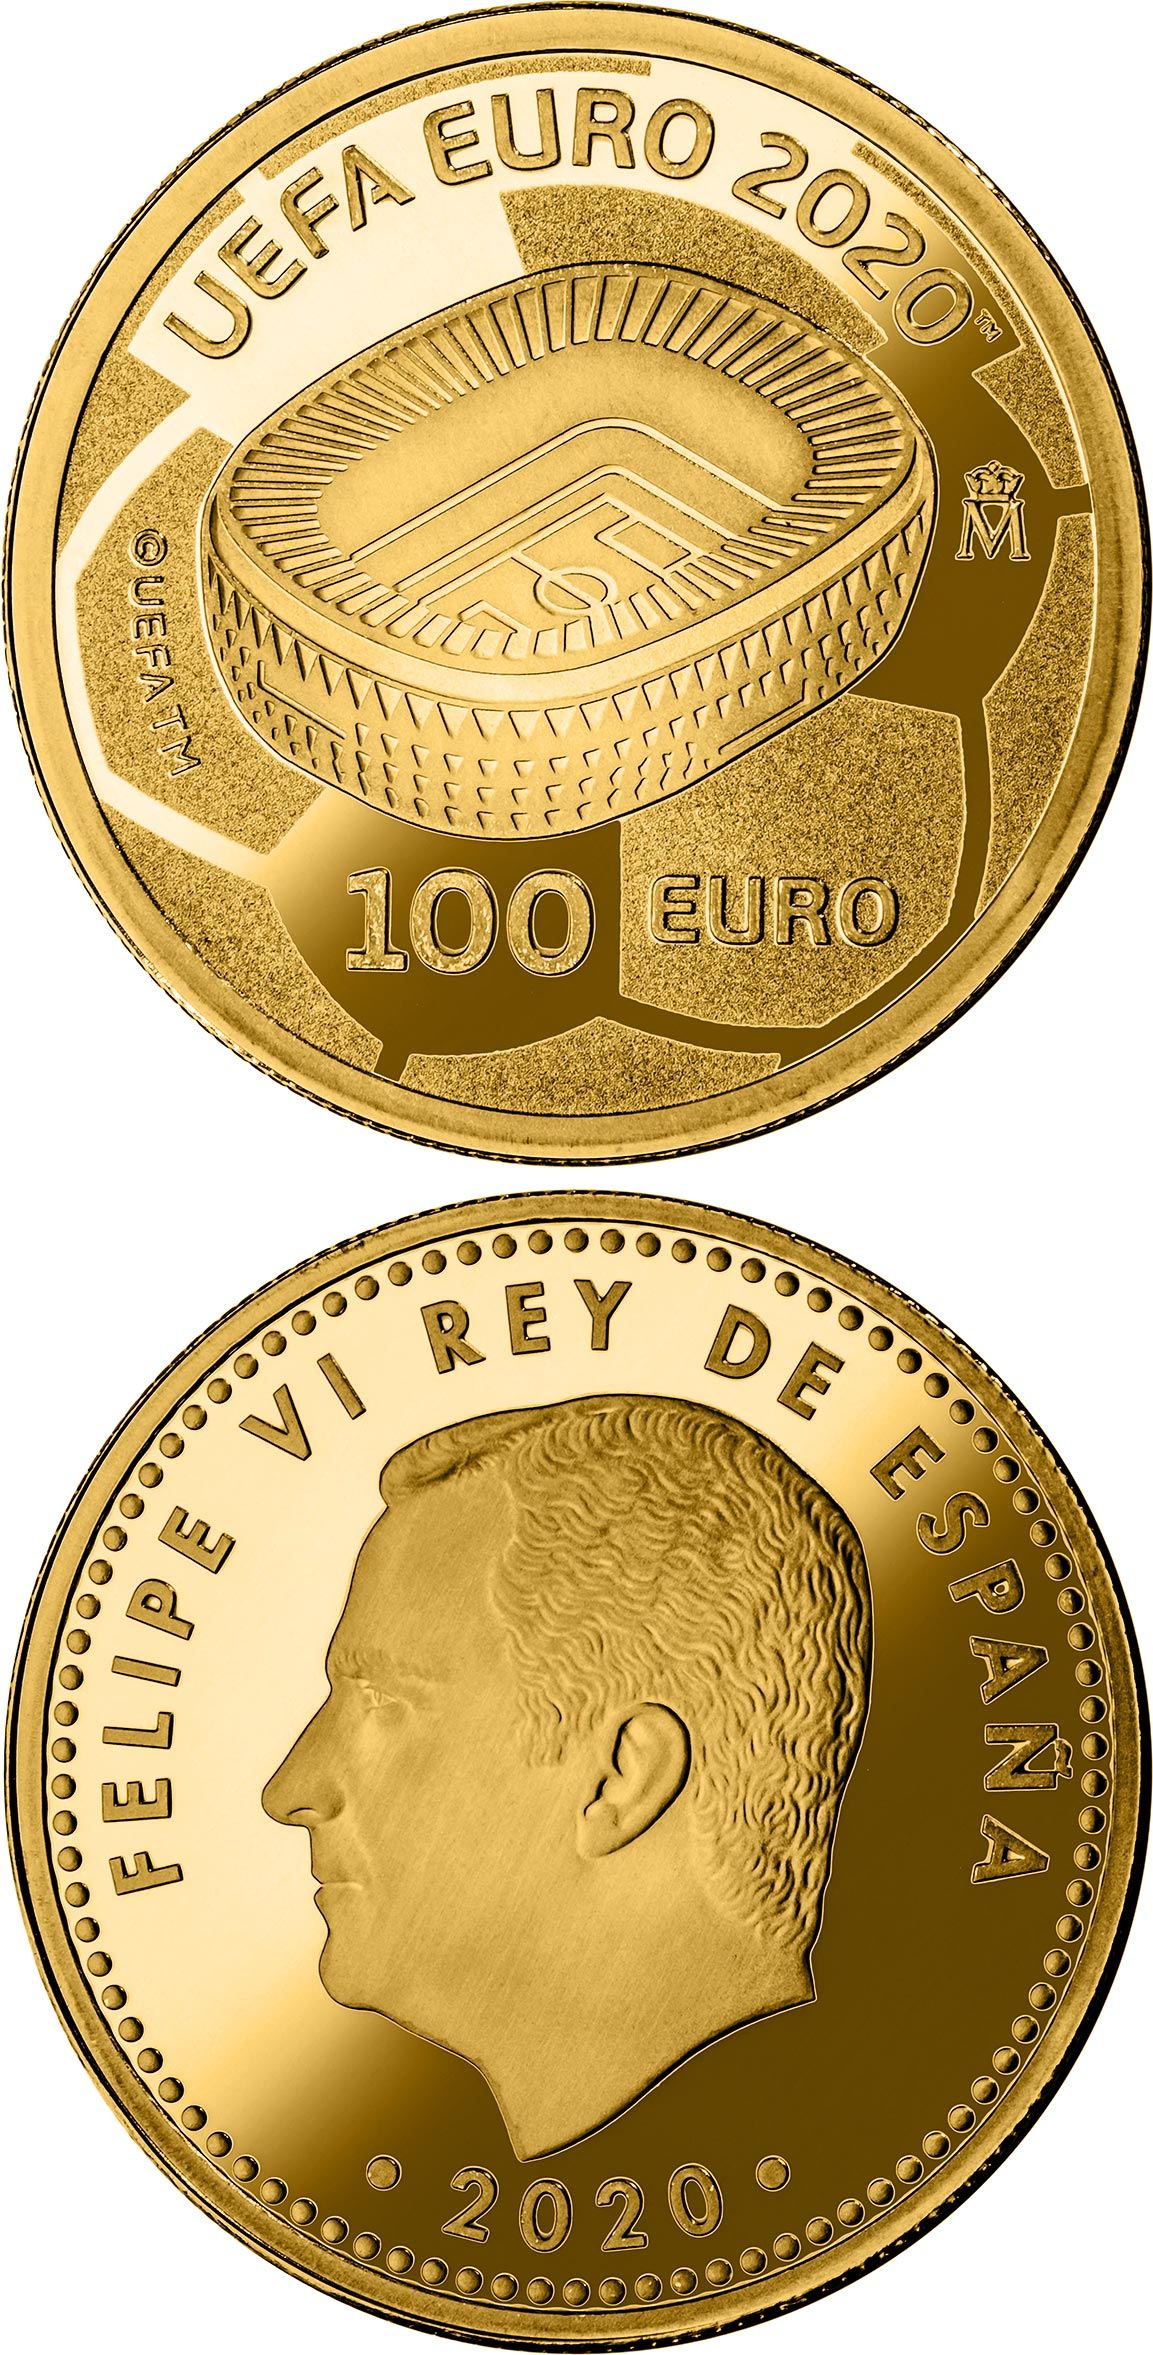 Image of 100 euro coin - UEFA EURO 2020 | Spain 2020.  The Gold coin is of Proof quality.